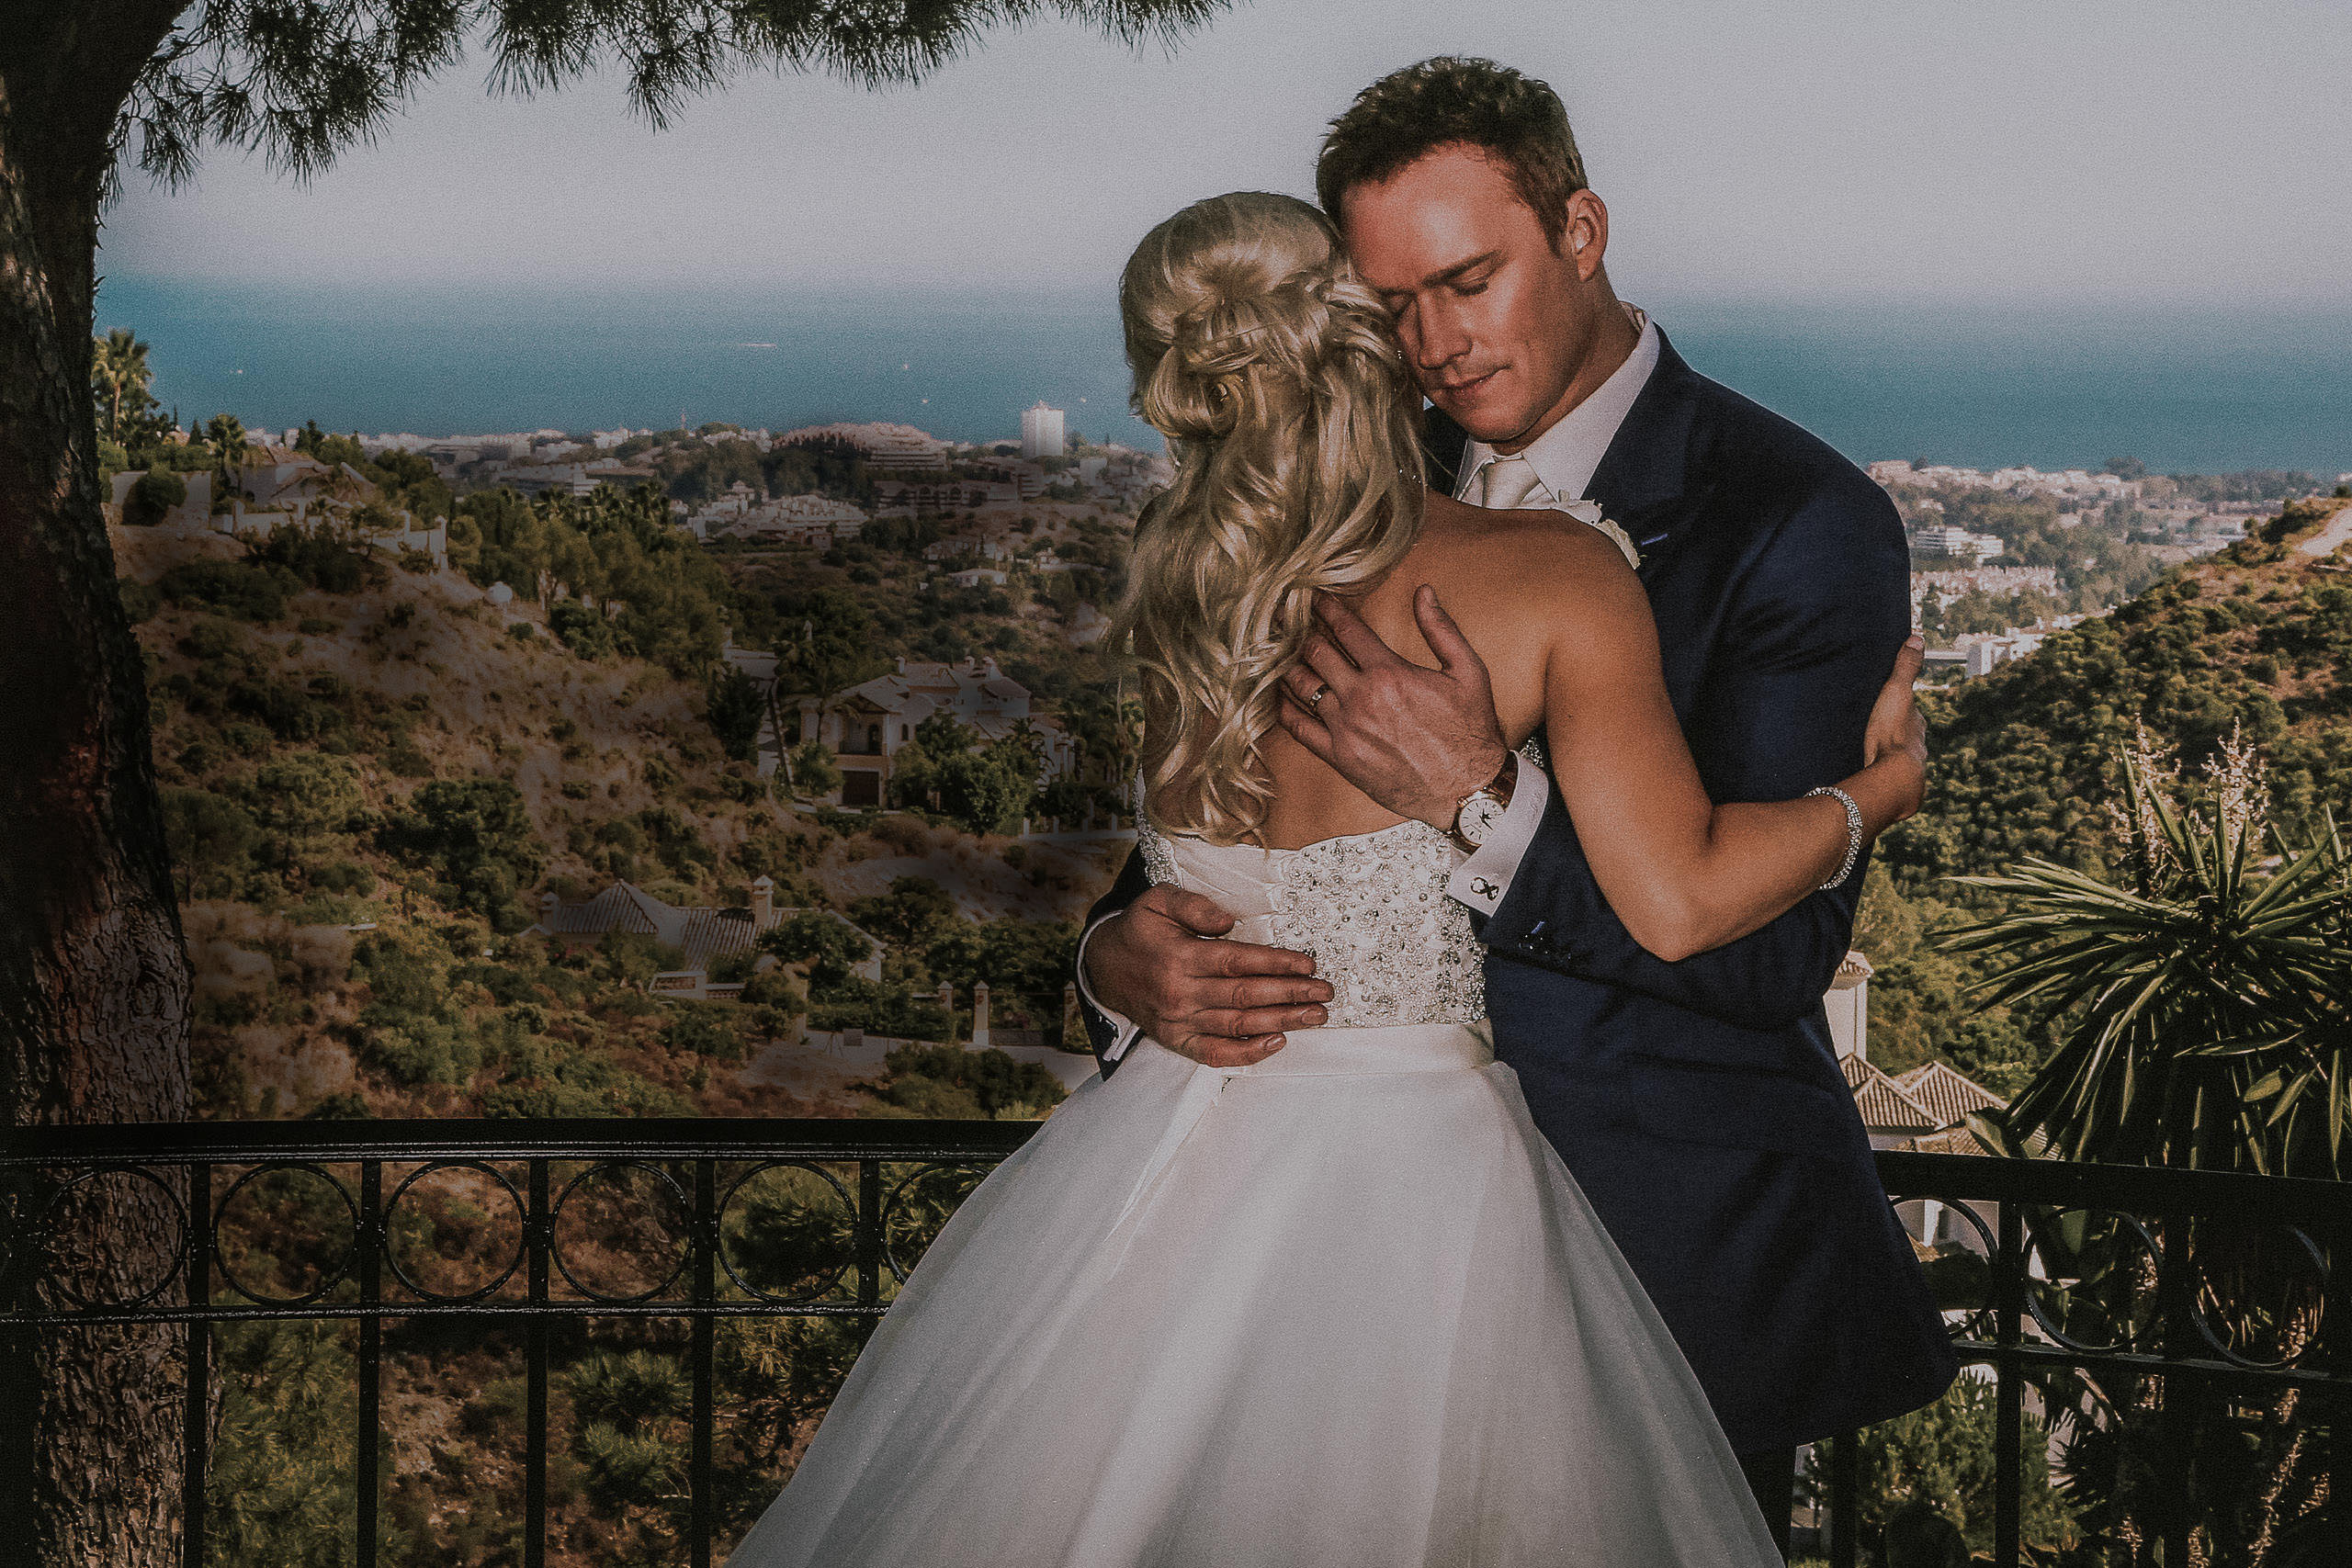 Celebrity wedding photographer. Bride and groom Russell watson romantic hug with vista views of Marbella